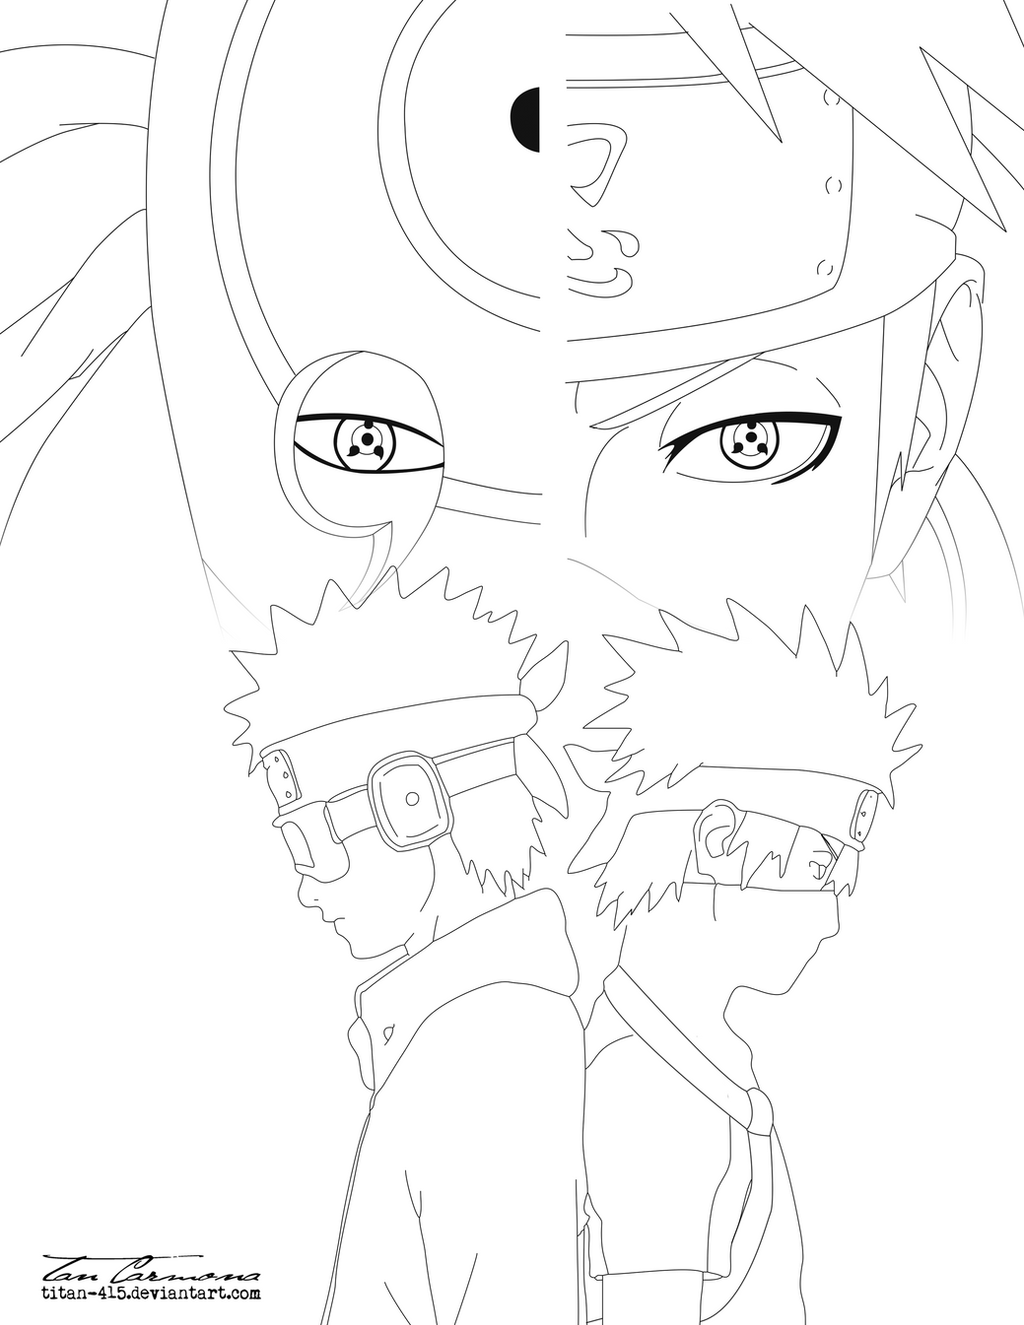 Obito and Kakashi Same Eyes Lineart by titan-415 on DeviantArt